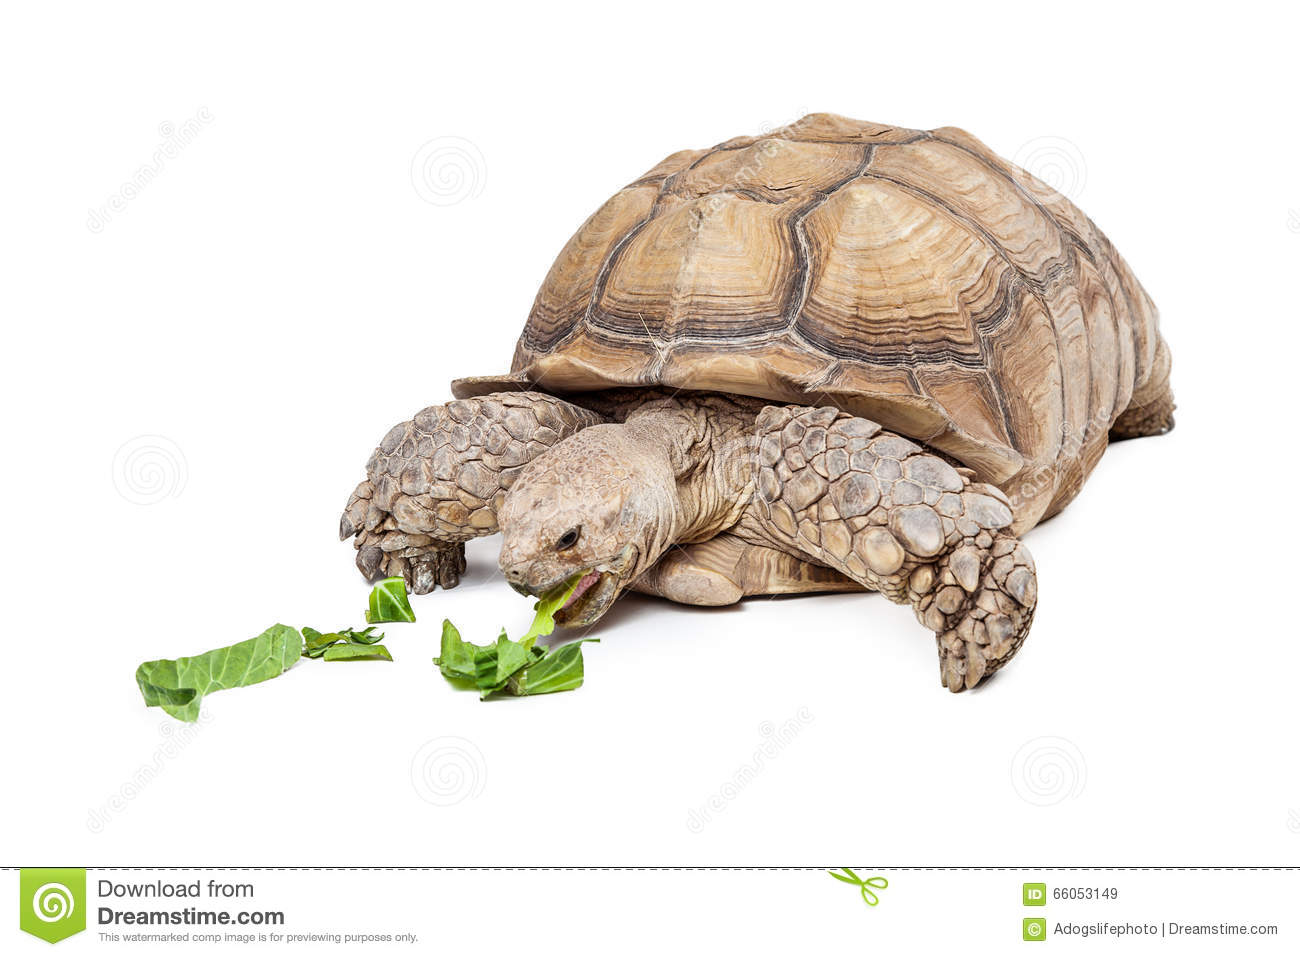 Sulcata Tortoise clipart #18, Download drawings